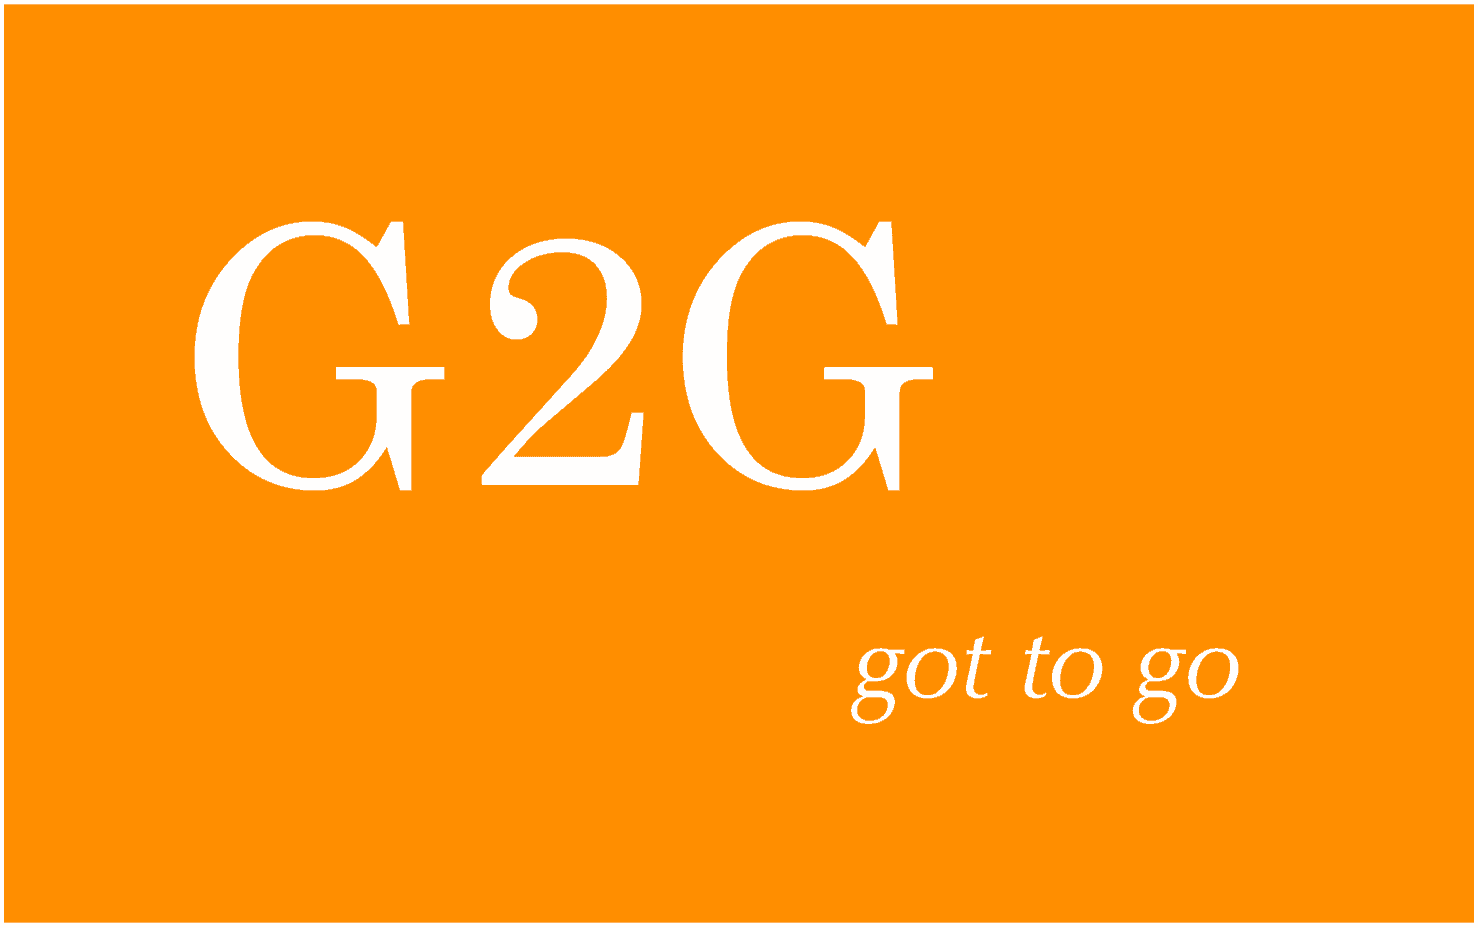 G2G meaning